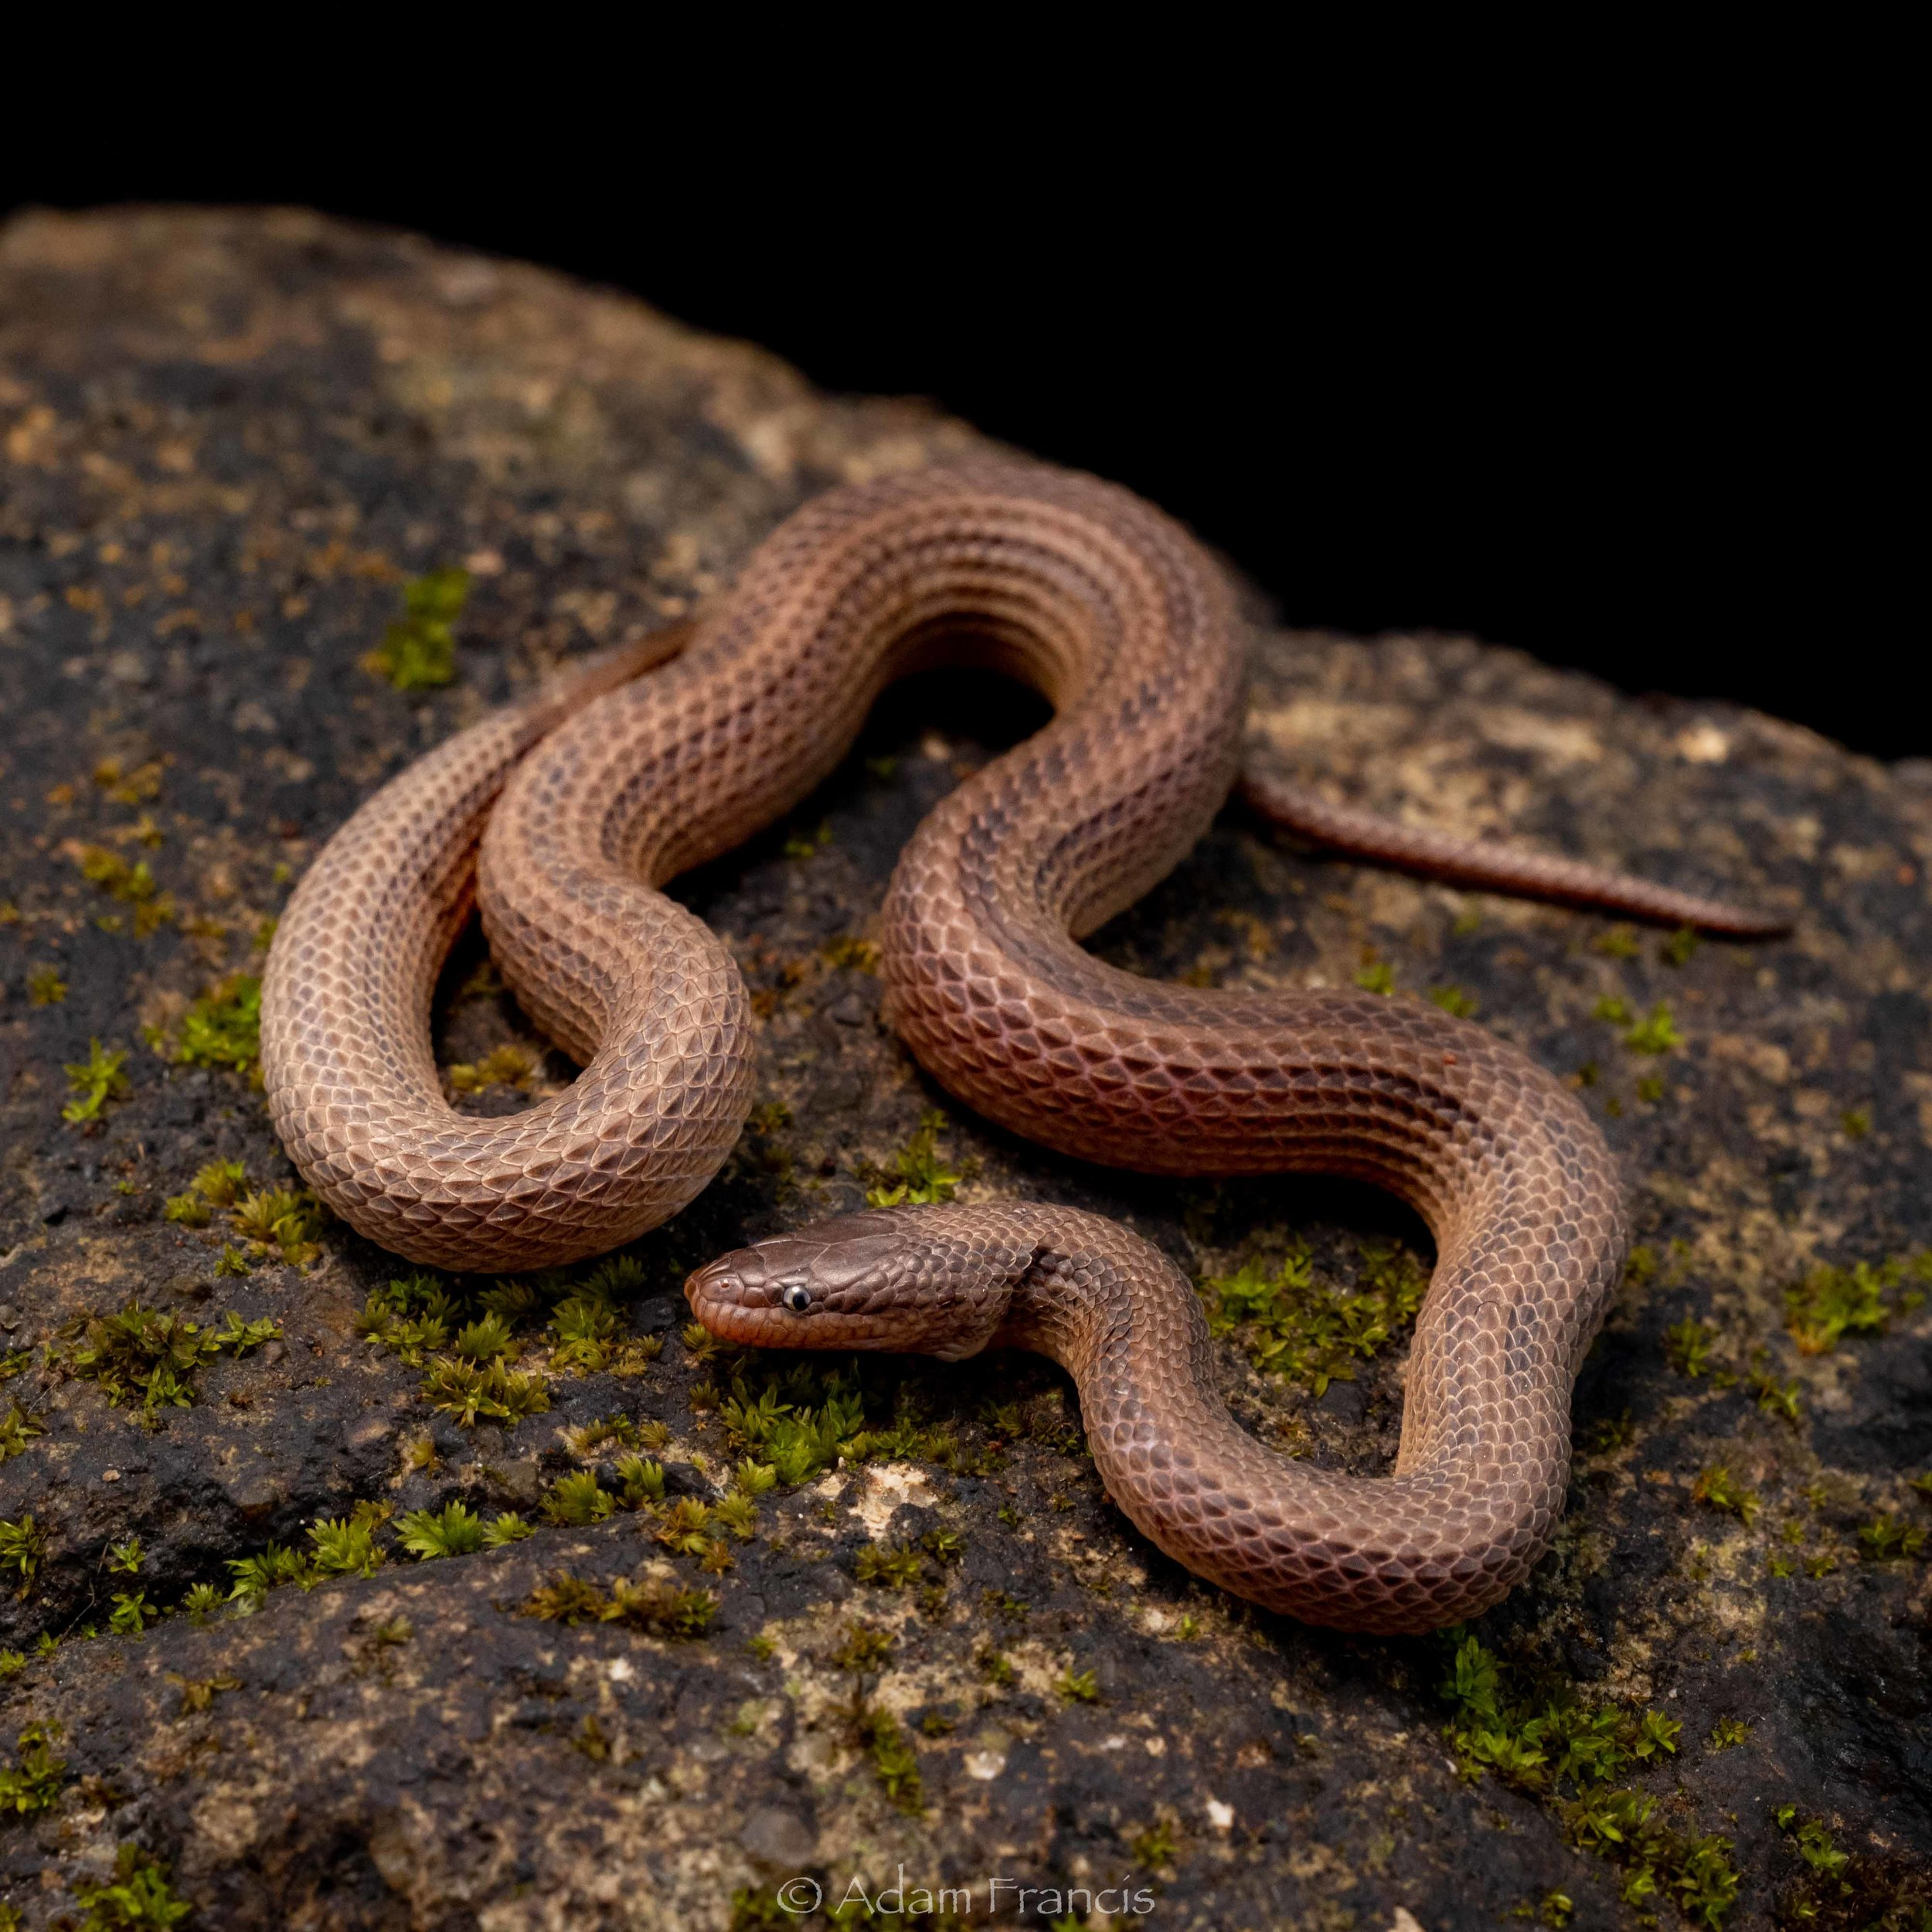 STREAM SNAKE - STRIPED